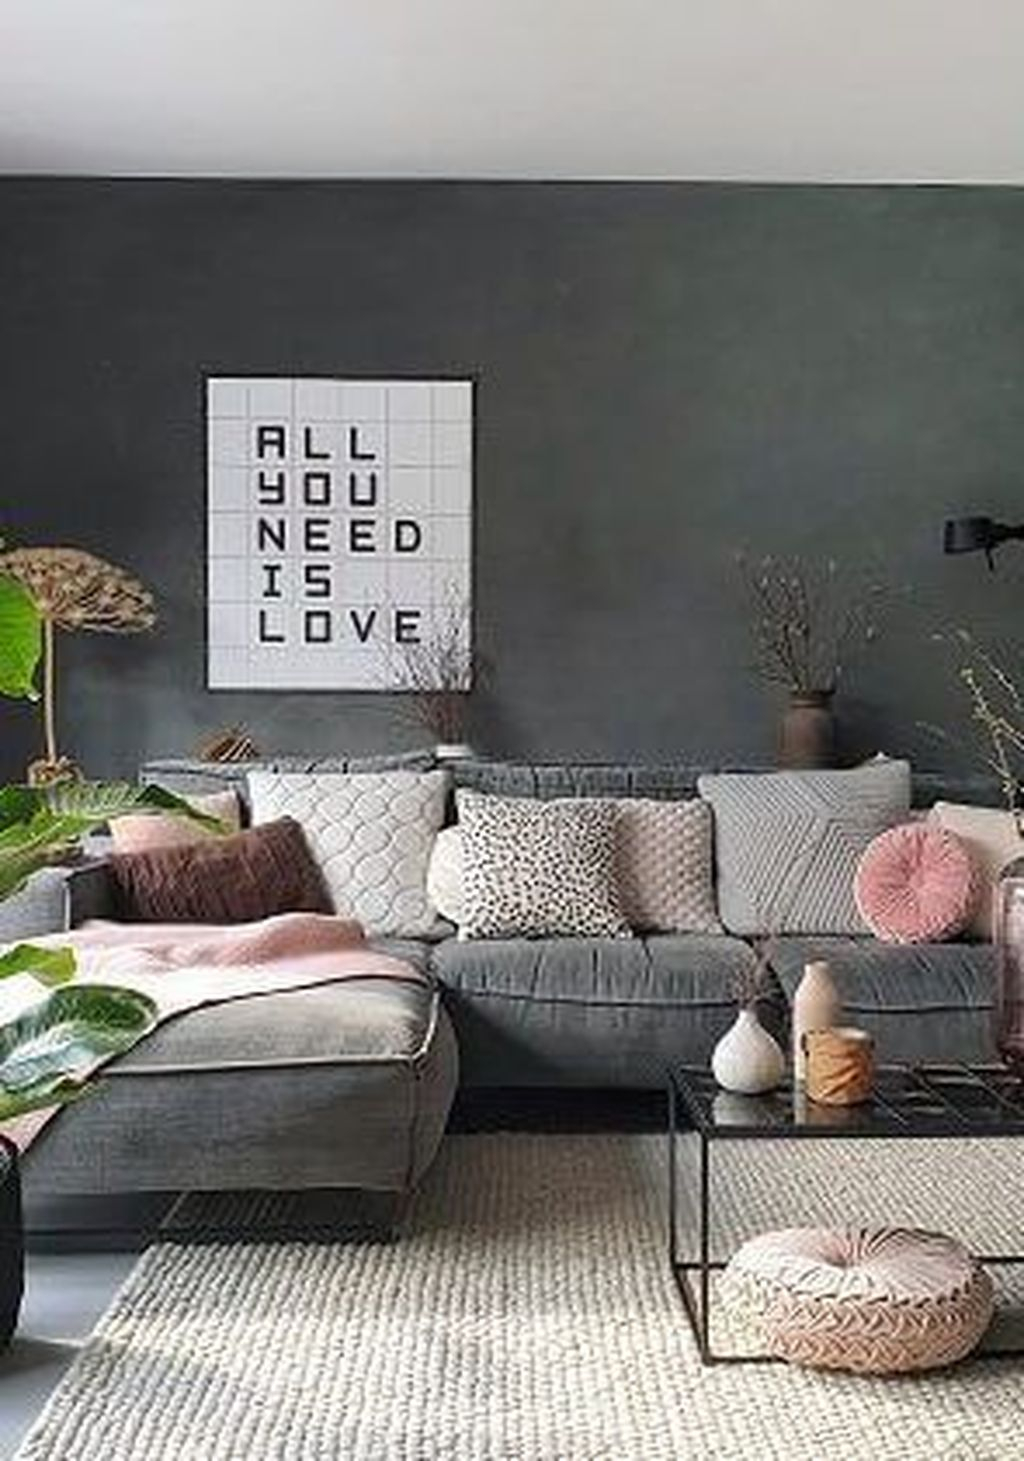 Vintage Home Interior Design Ideas For Awesome Living Room 04